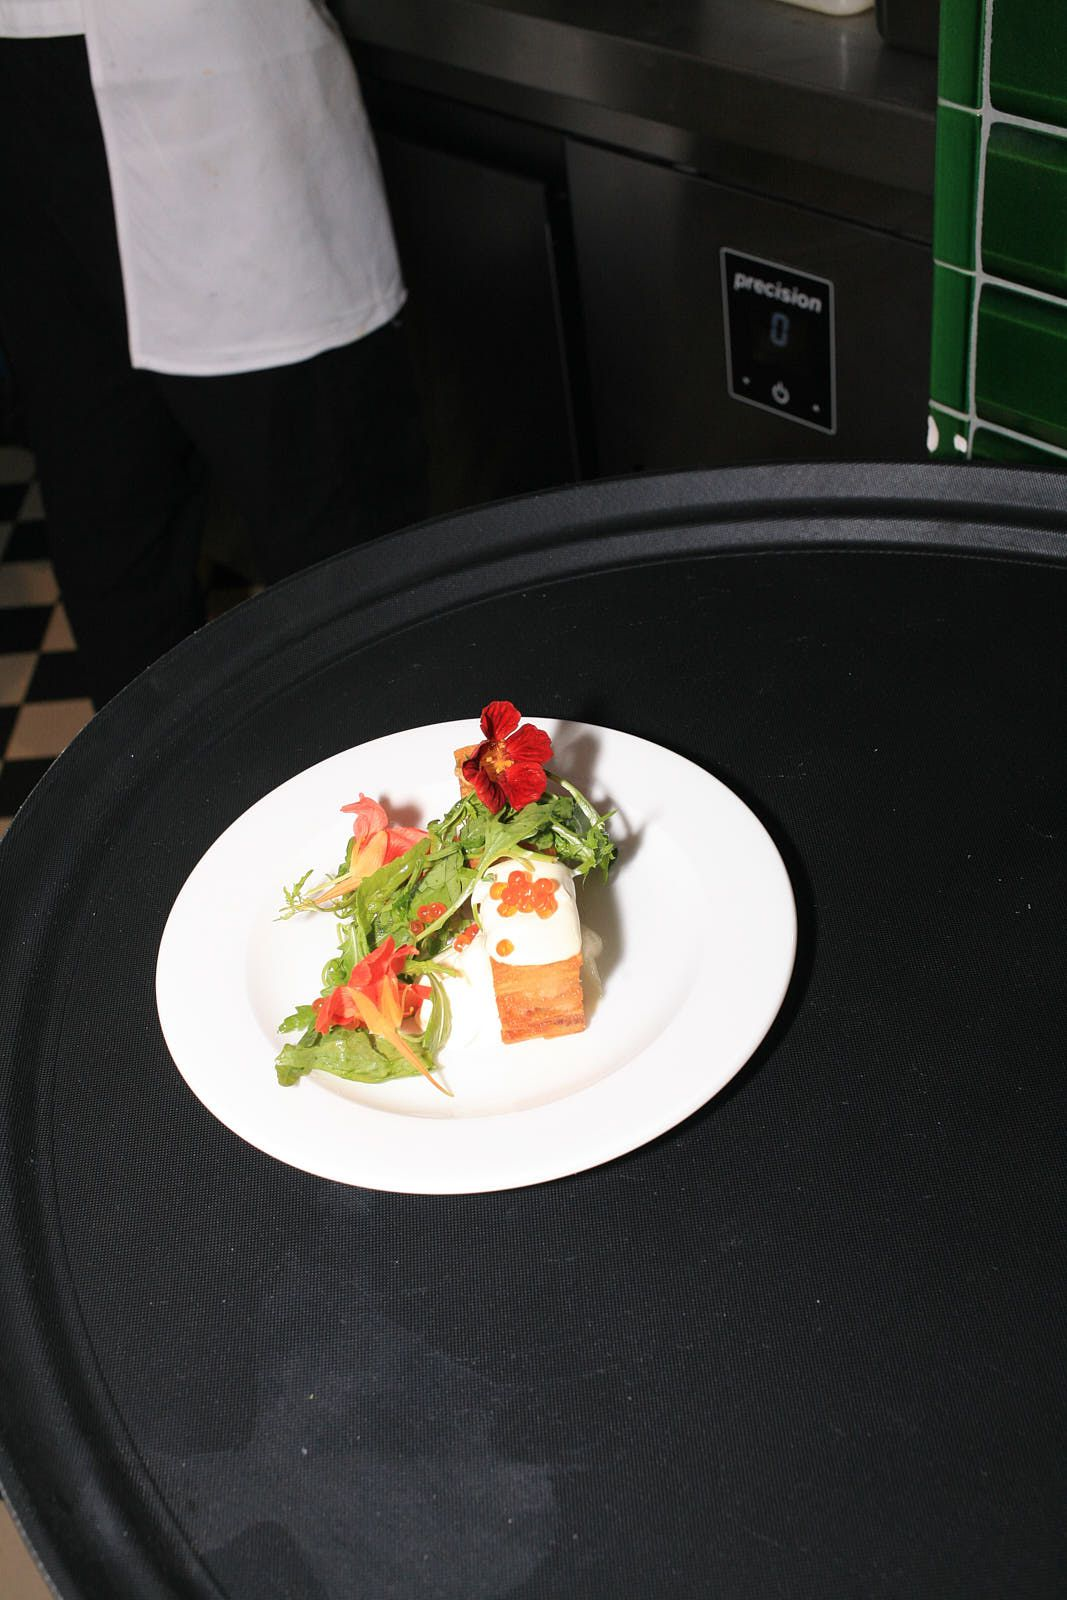 A tray with a white plate containing Sessions Arts Club's fried potato, eel, and creme fraiche